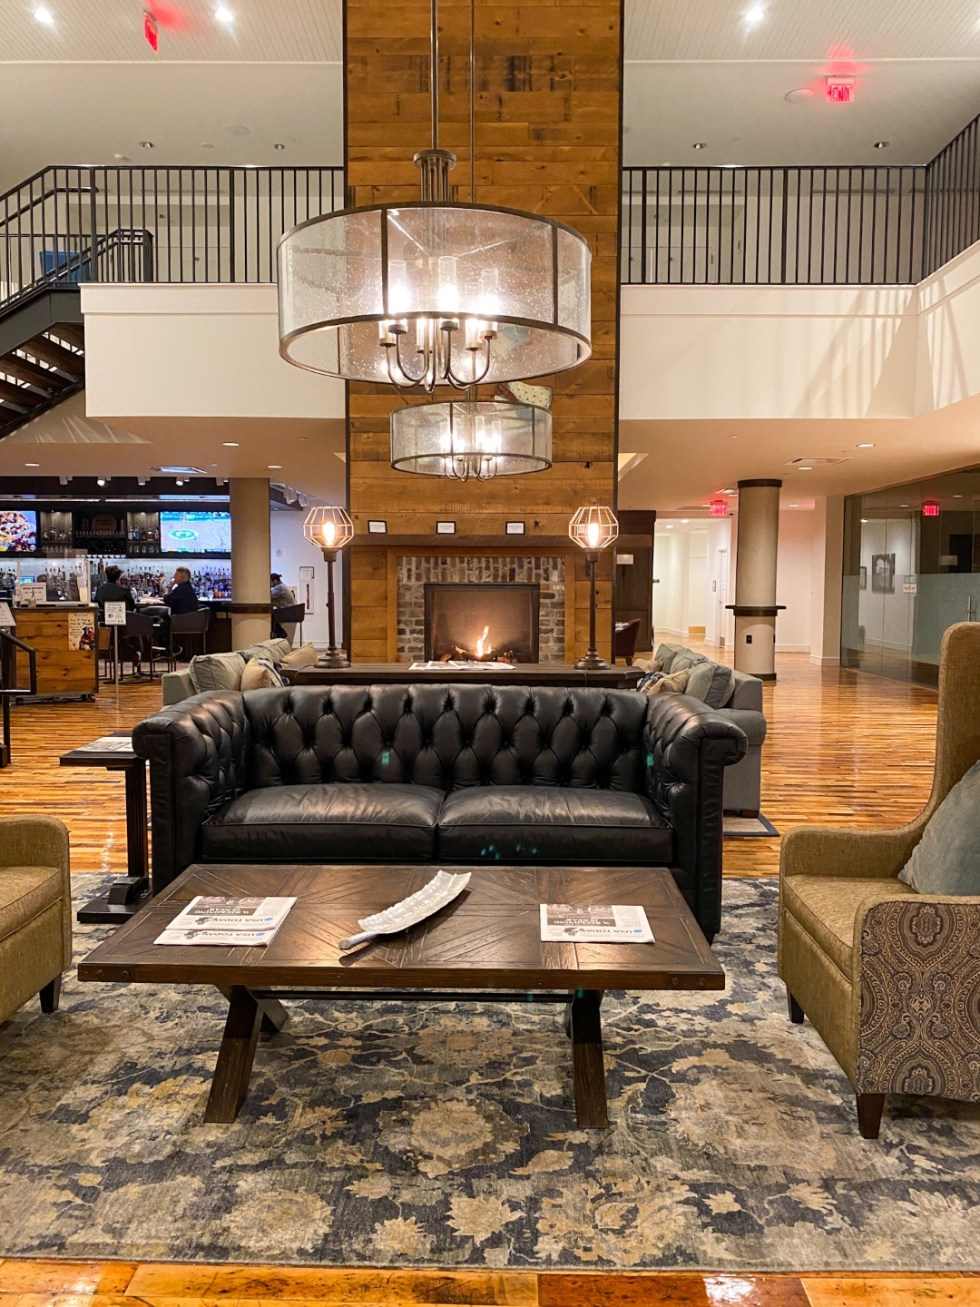 Weekend Travel: The Best Things to Do in Beaufort NC in 48 Hours - I'm Fixin' To - @imfixintoblog |Things to Do in Beaufort NC by popular NC travel blog, I'm Fixin' To: image of a hotel lobby.